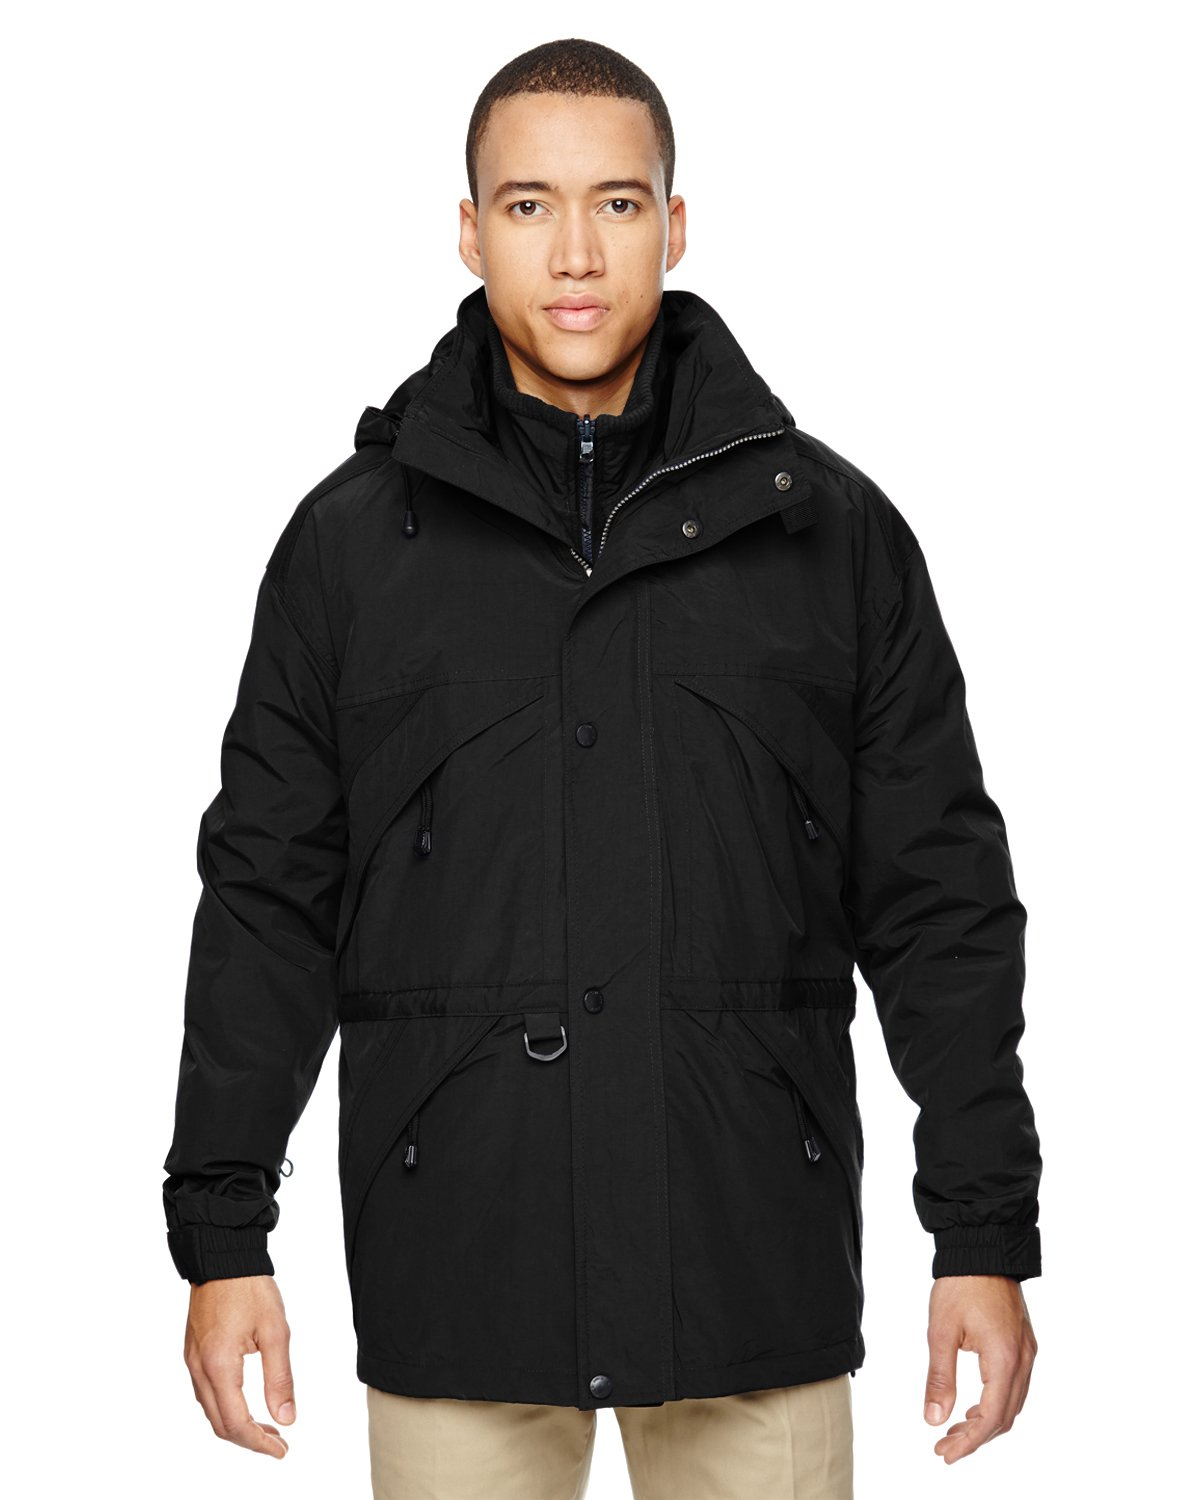 Ash City Mens 3-in-1 Parka with Dobby Trim (Small, Black)